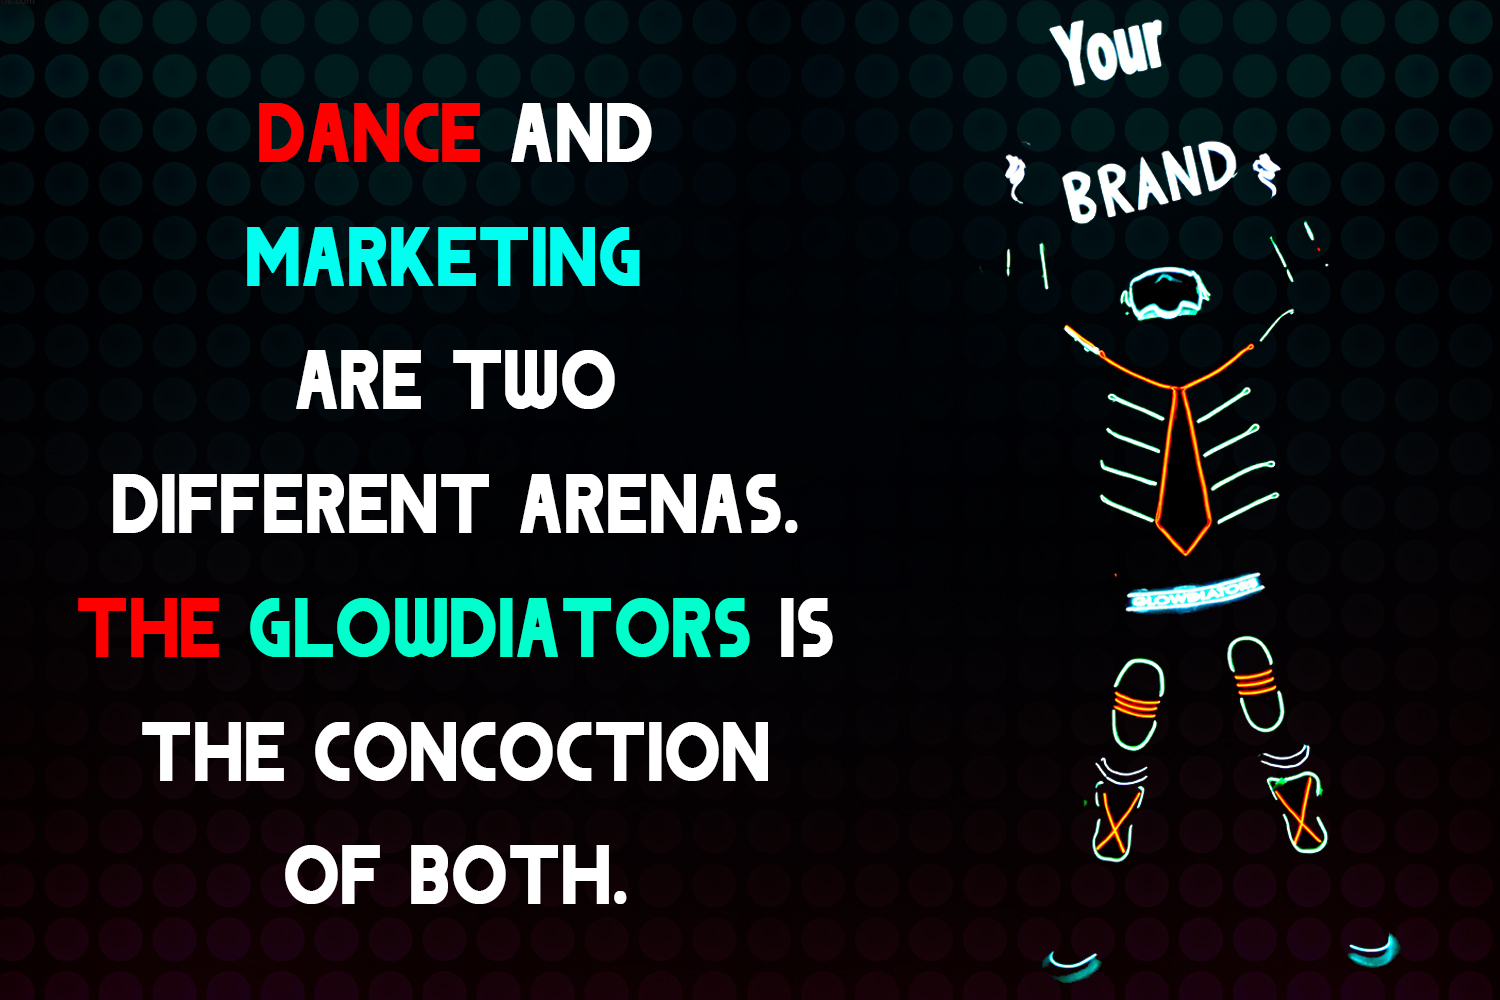 led tron dance and branding